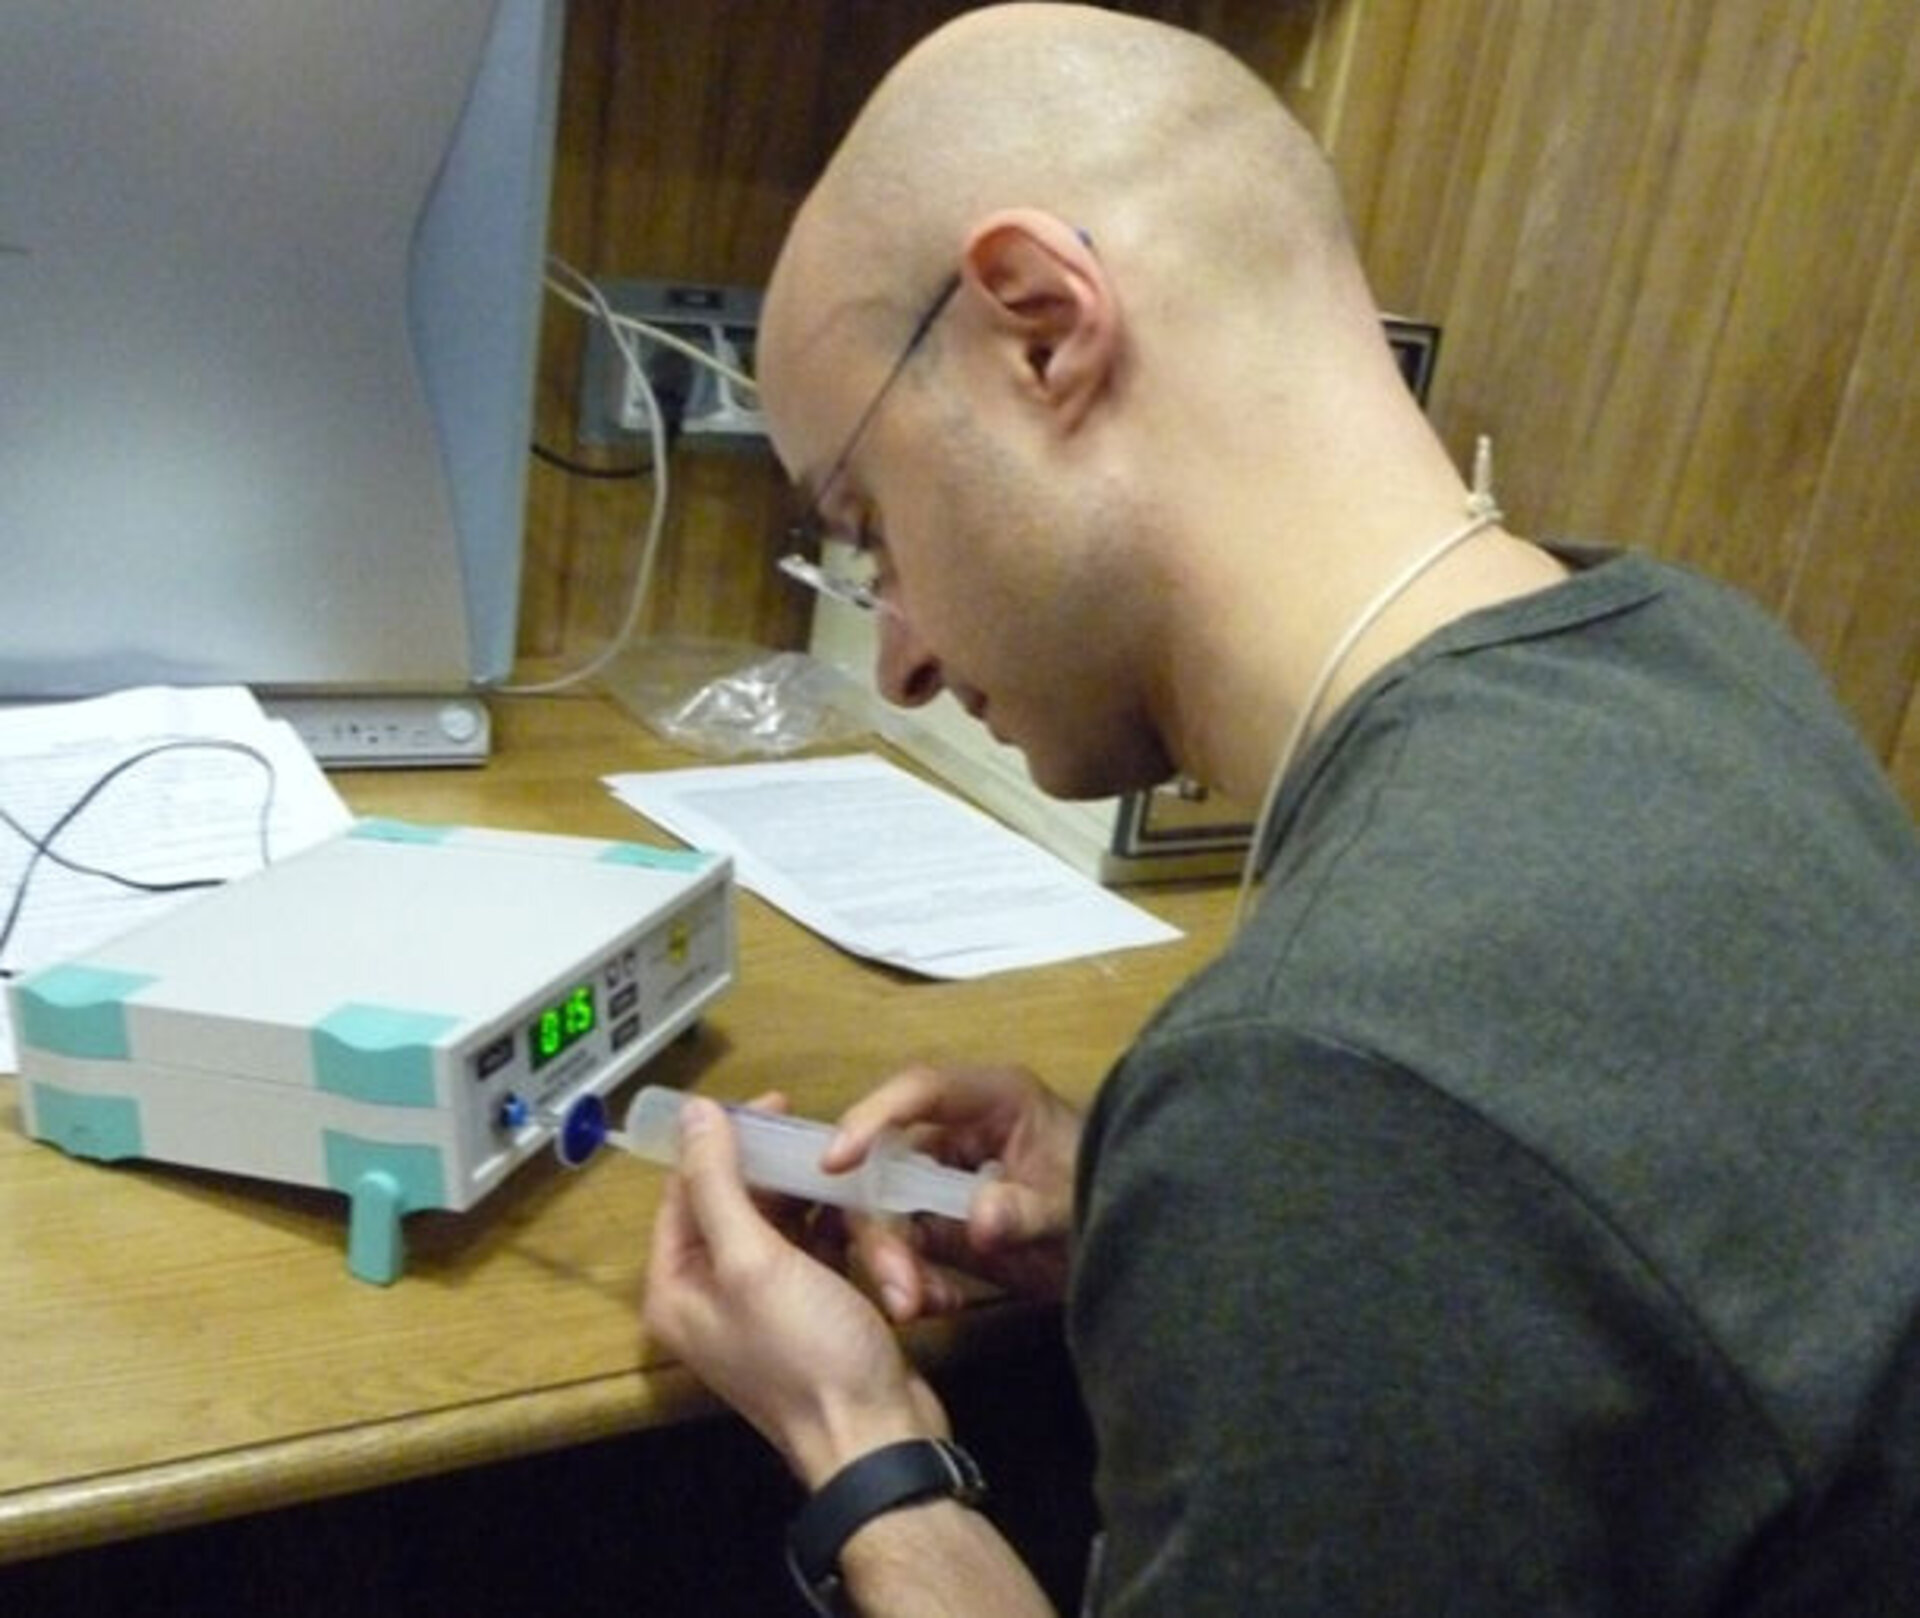 Cyrille analyses the hydrogen content of his breath for one of the experiments